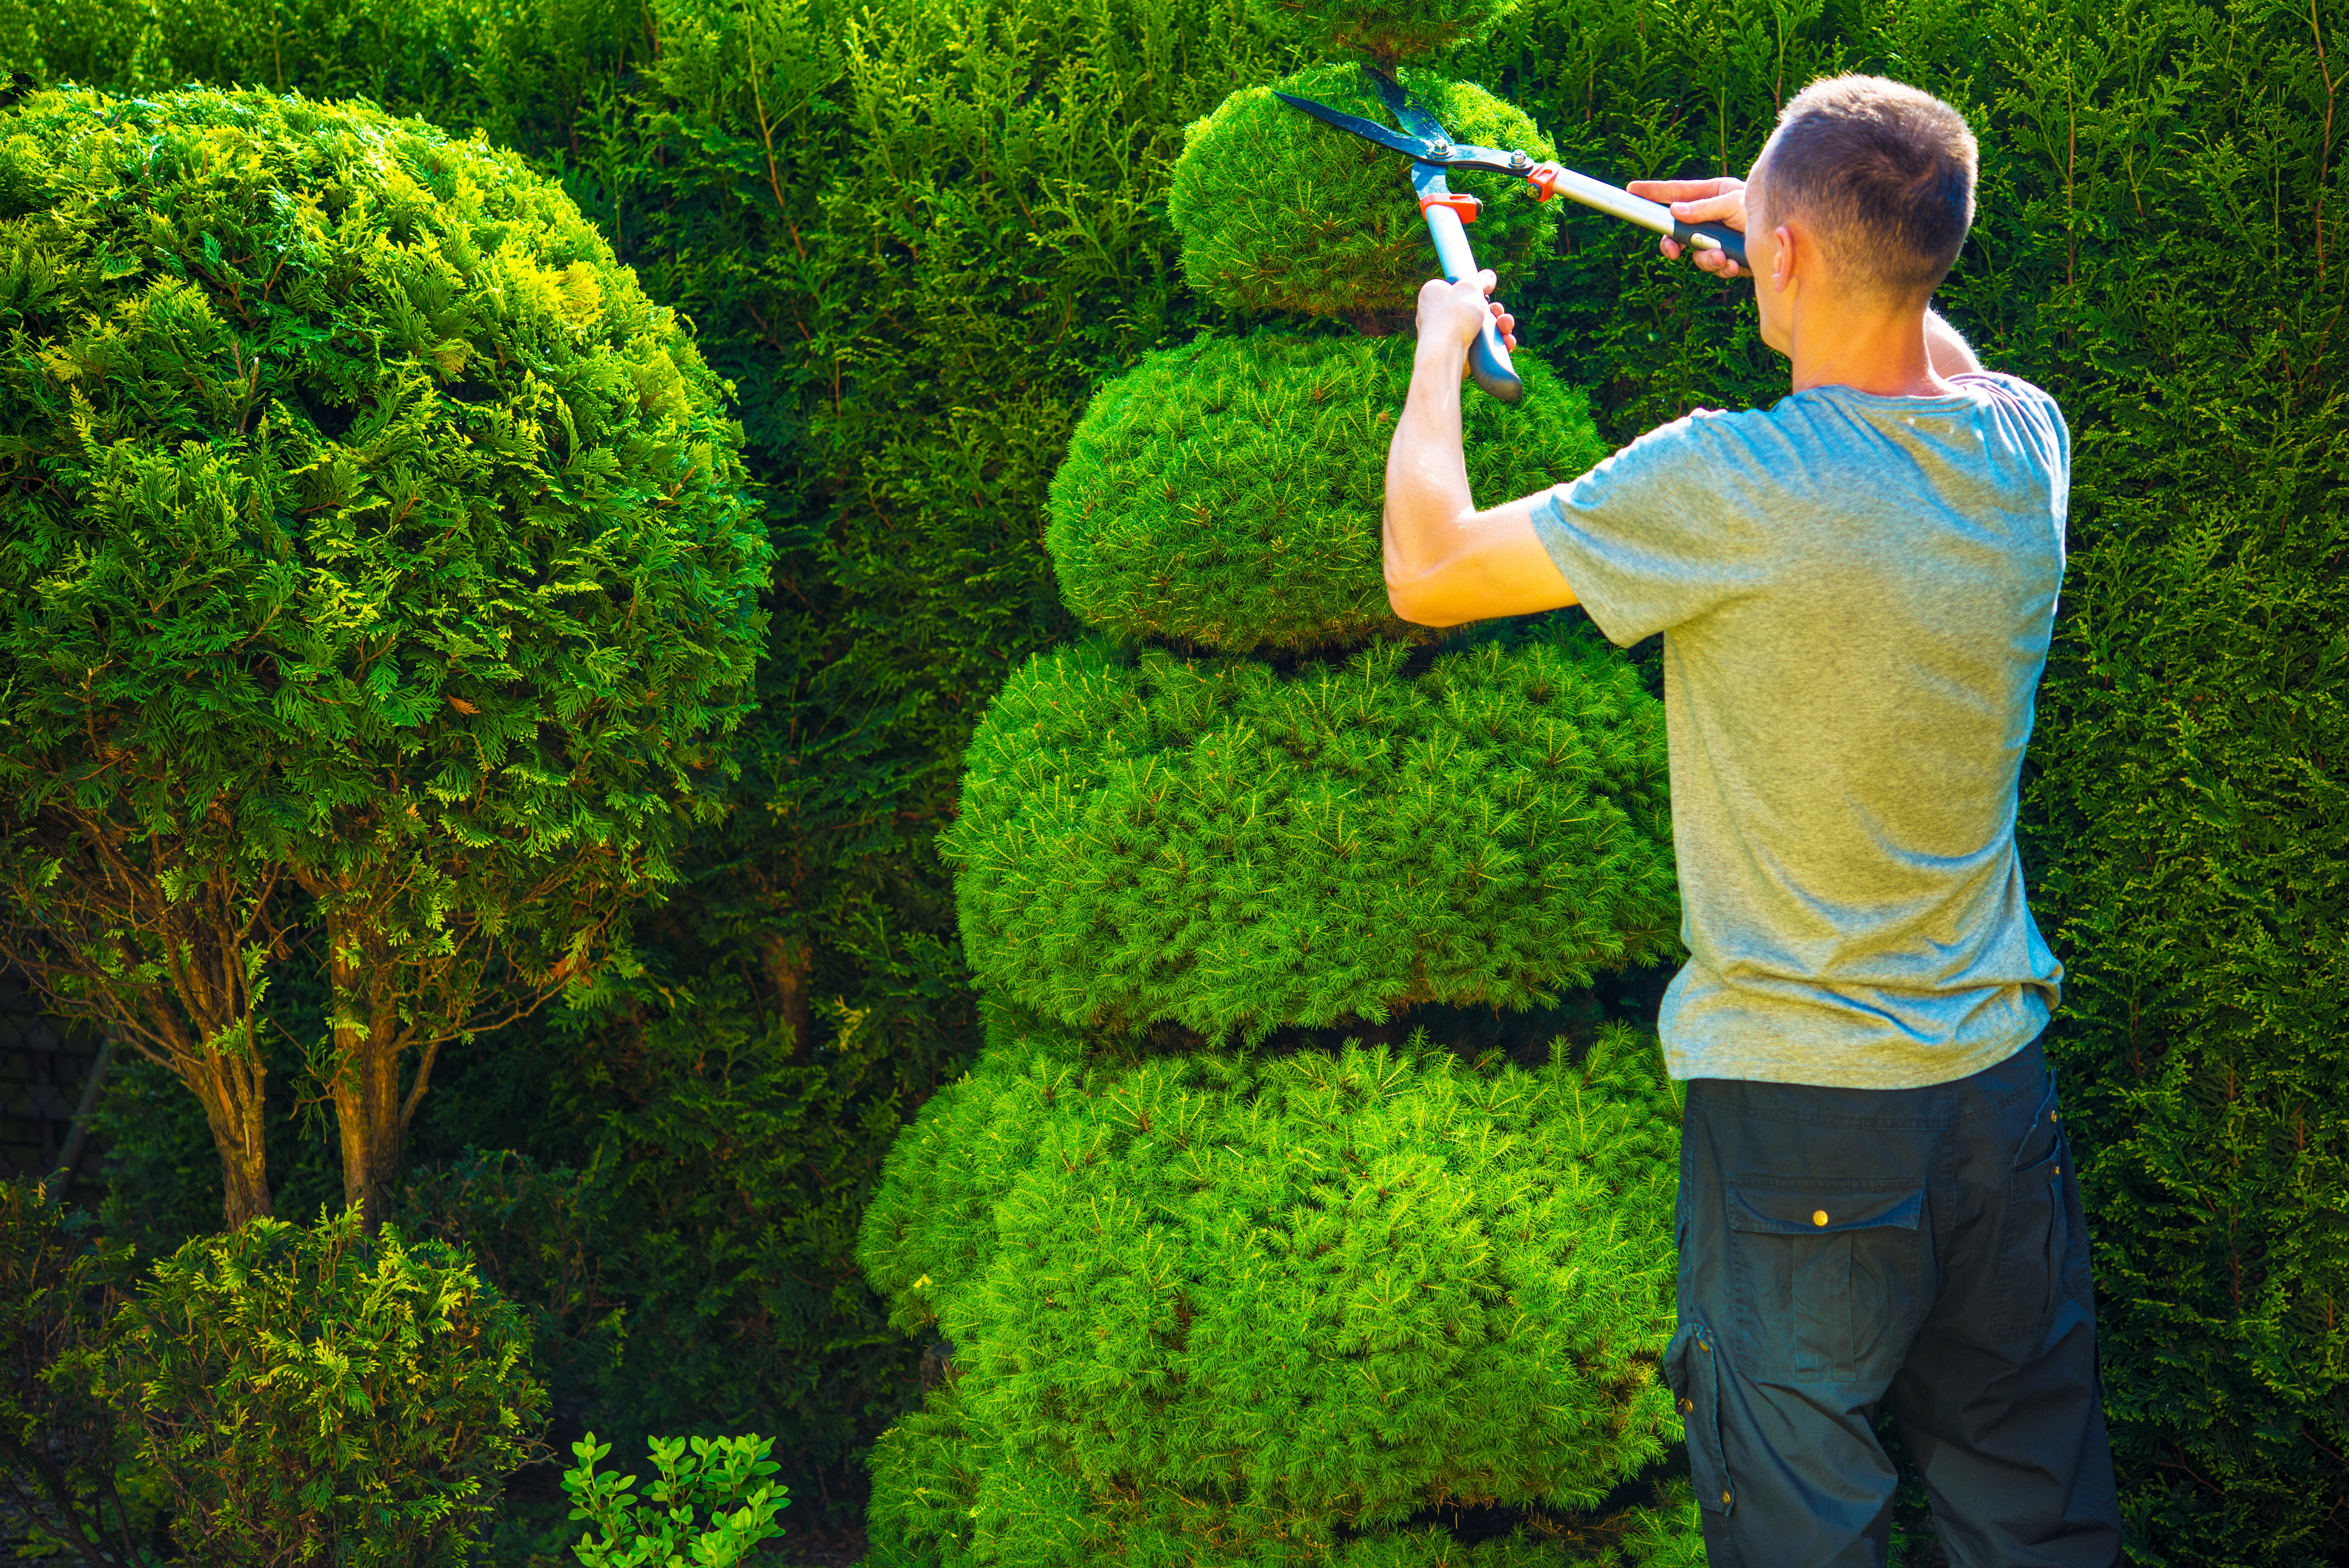 Trim to keep it in shape (Thinkstock/PA)